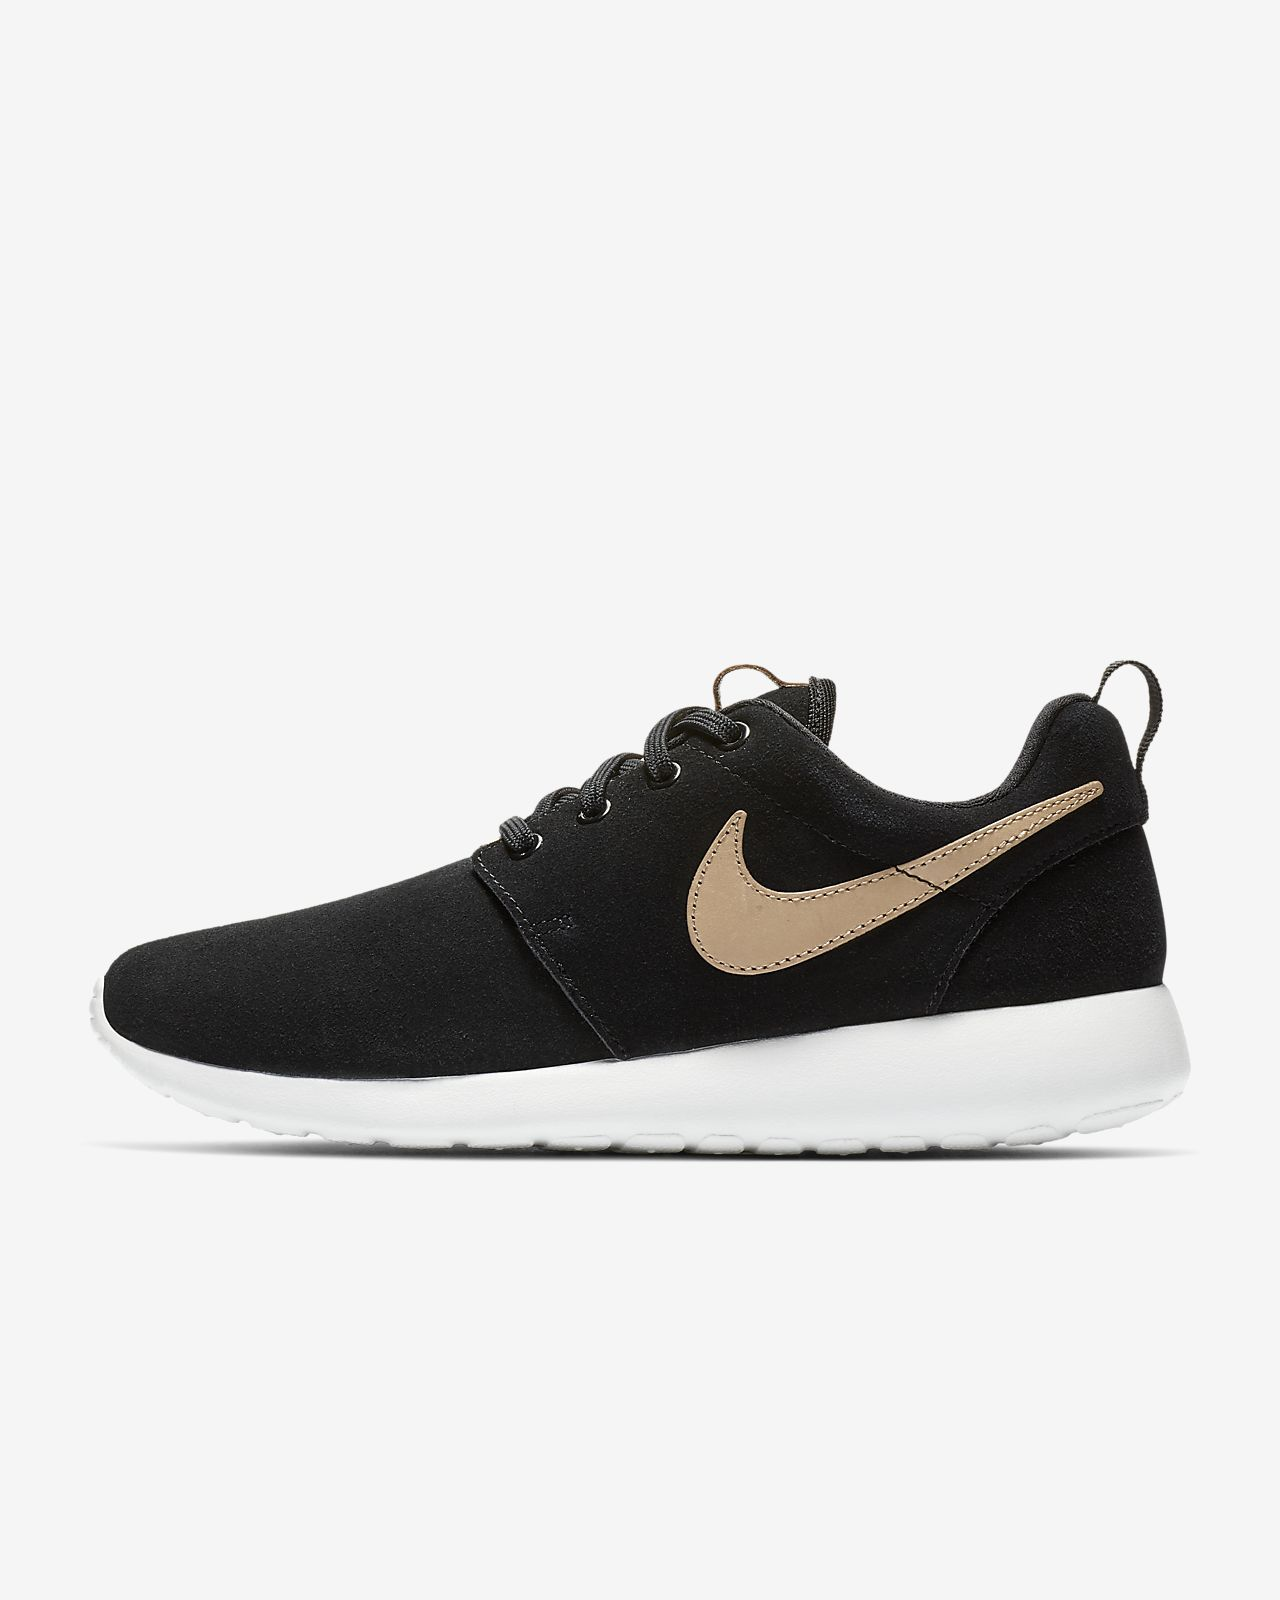 huge discount 4943b 48ac0 ... Nike Roshe One Premium Women s Shoe